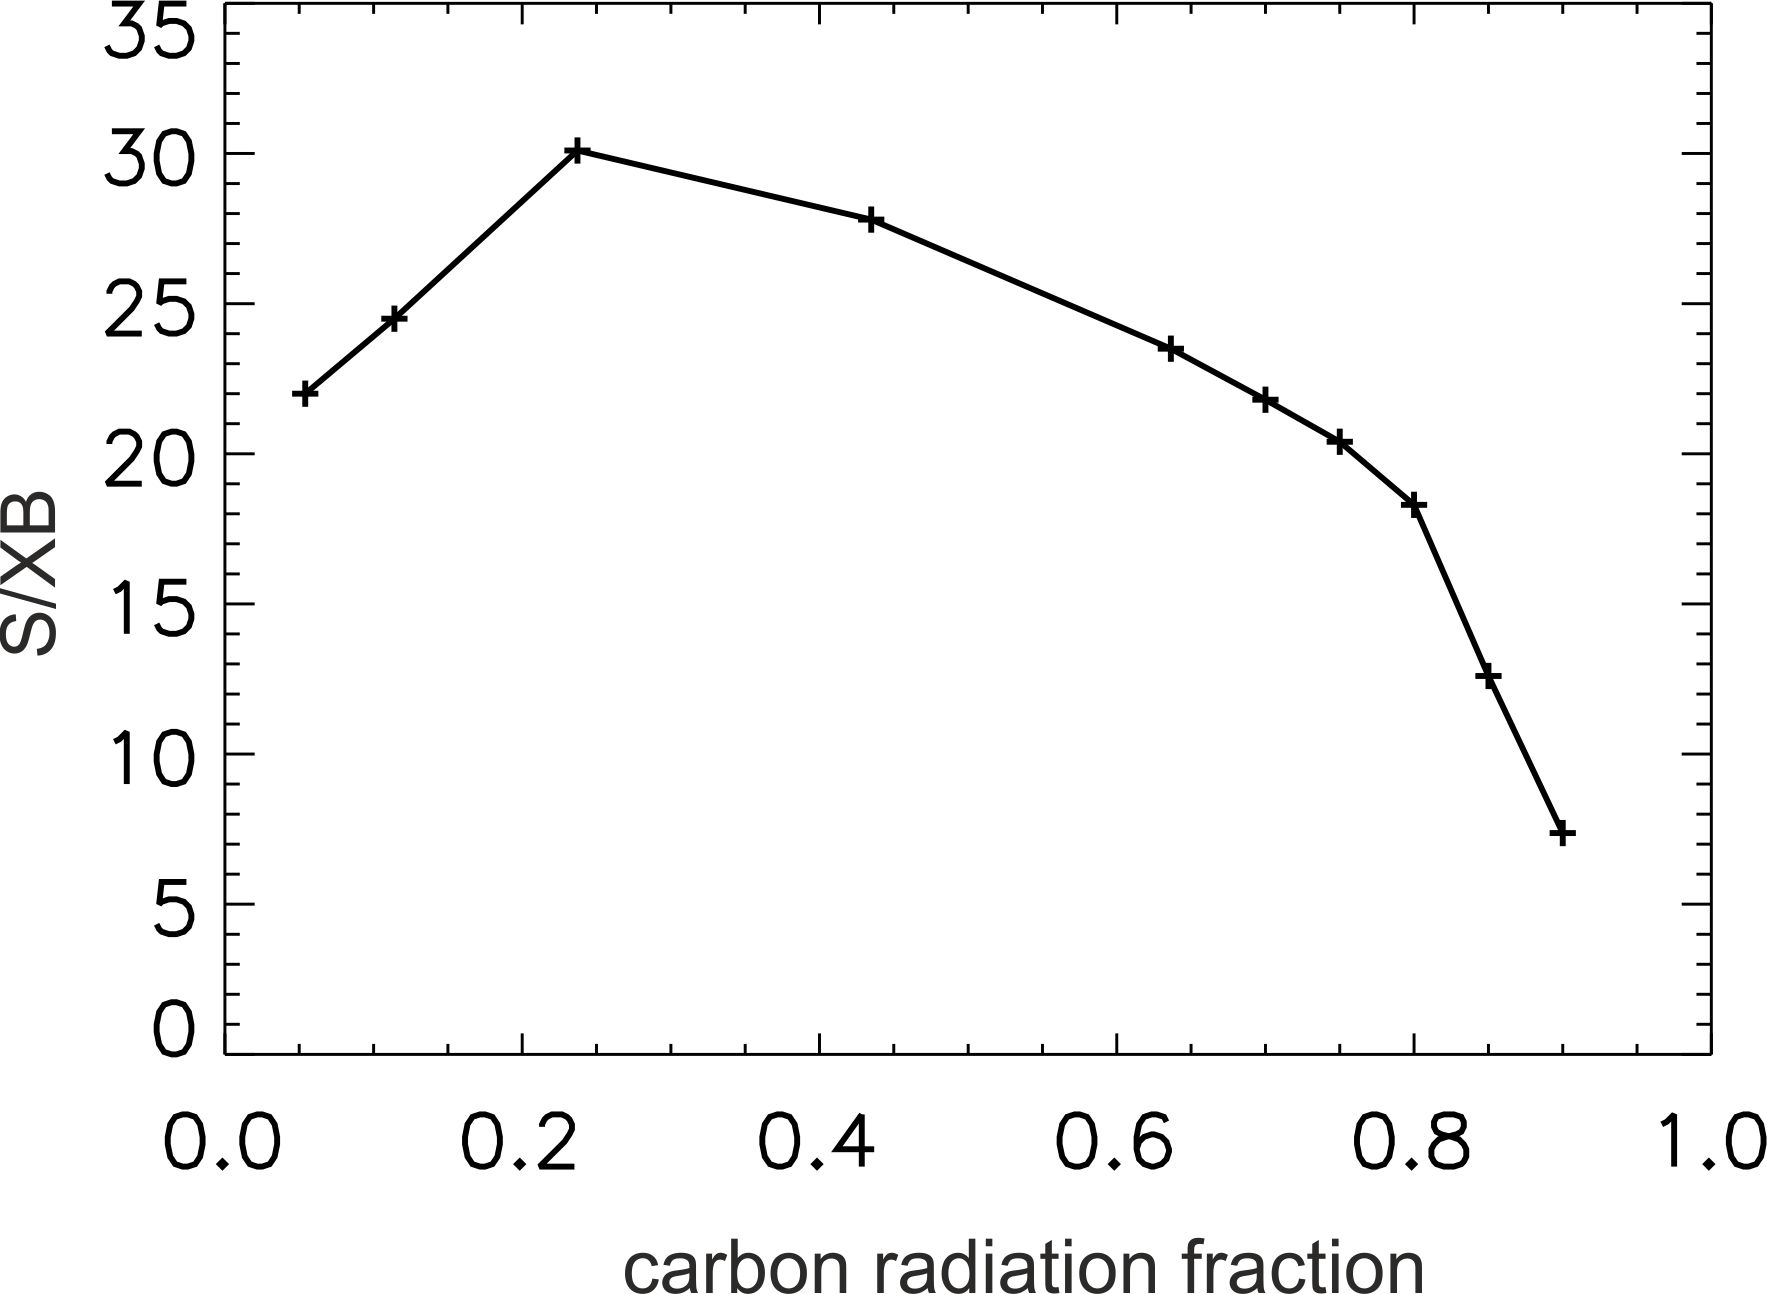 Preliminary code results of volume-averaged S/XB ratio as a function of carbon radiation fraction.